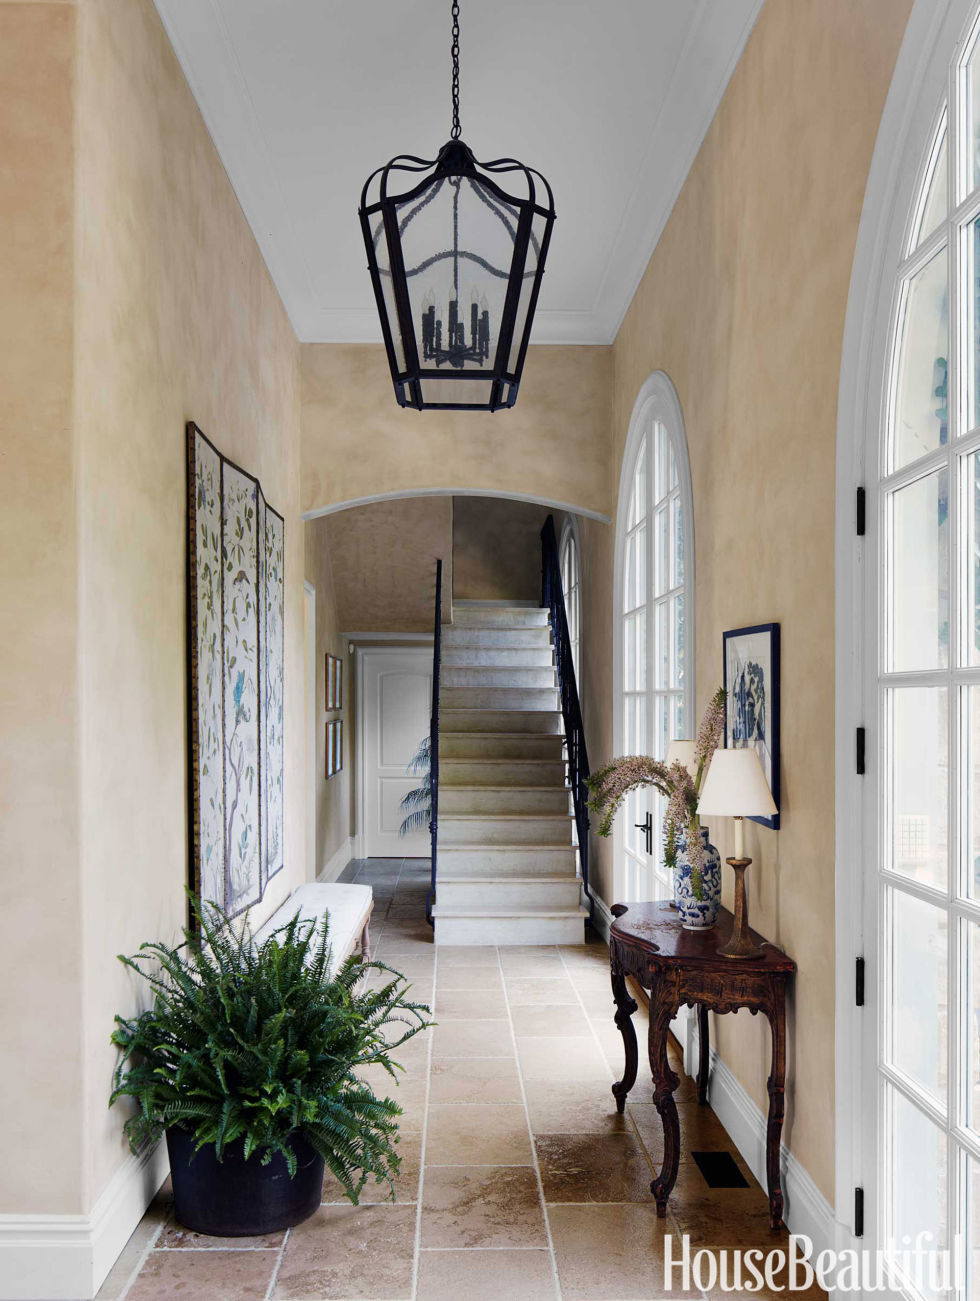 Foyer Designs Ideas 70 foyer decorating ideas design pictures of foyers house beautiful 70 Foyer Decorating Ideas Design Pictures Of Foyers House Beautiful